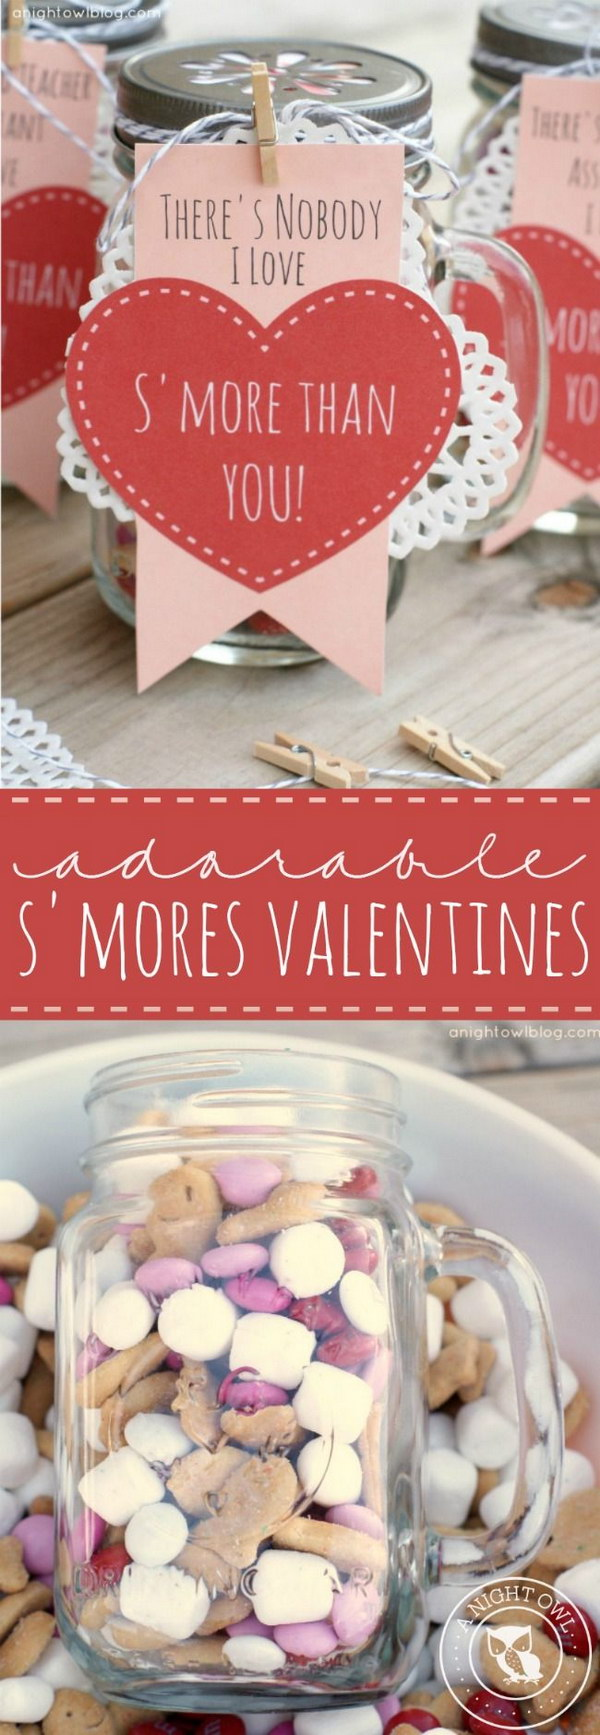 12 Mason Jars Filled with S'mores Snack Mix Includes FREE Printables